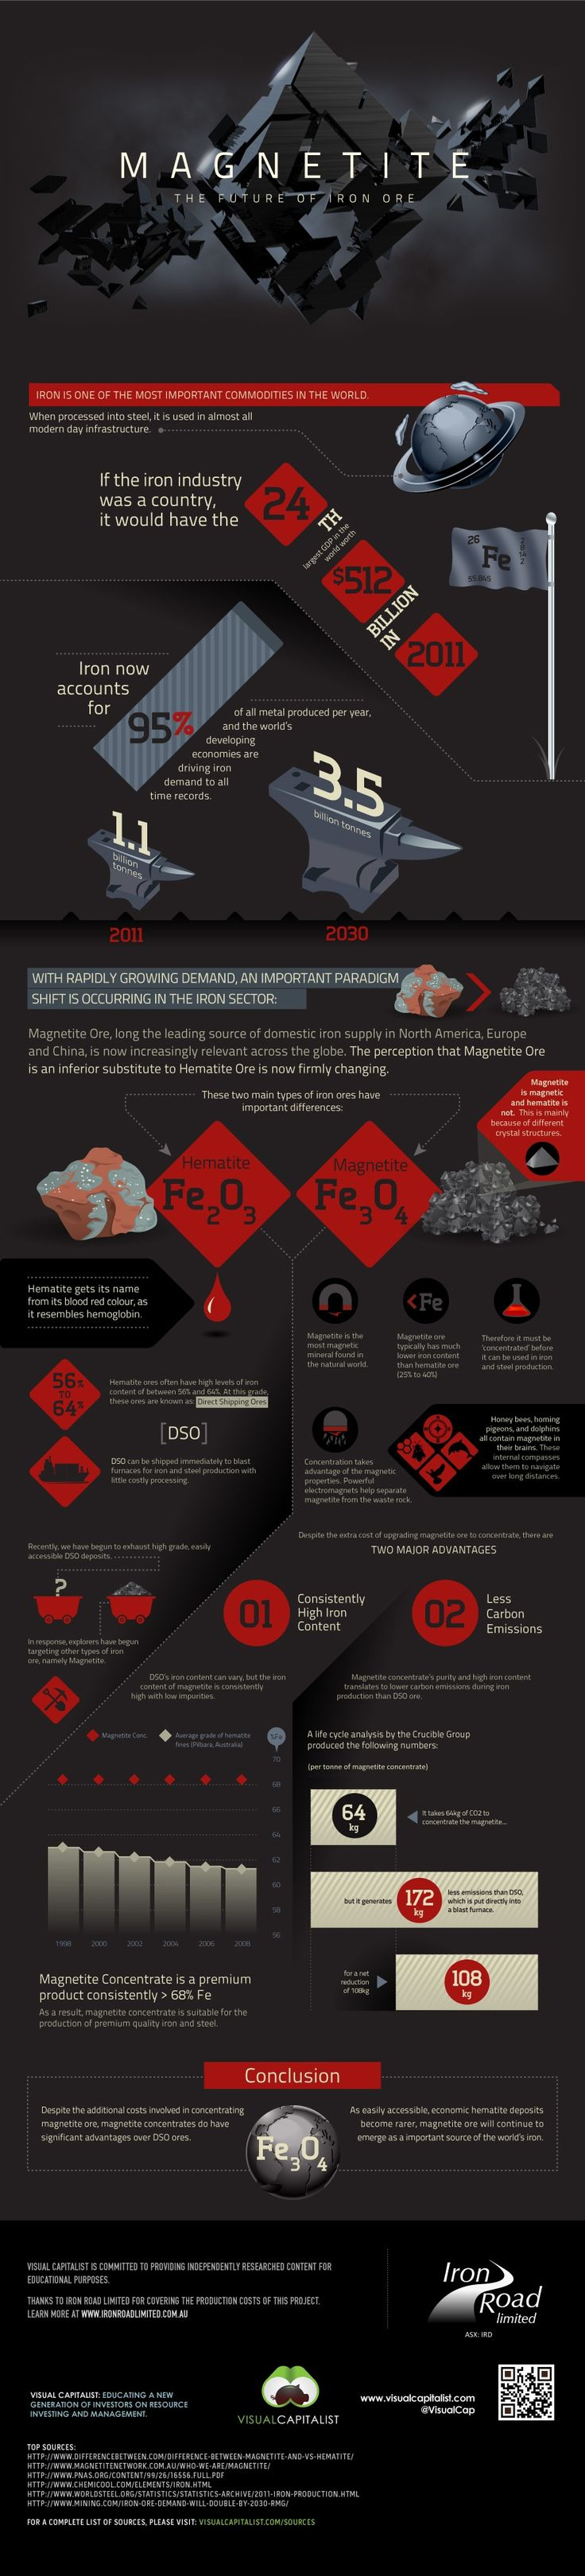 """Magnetite: The Future of Iron Ore"" infographic by Visual Capitalist"